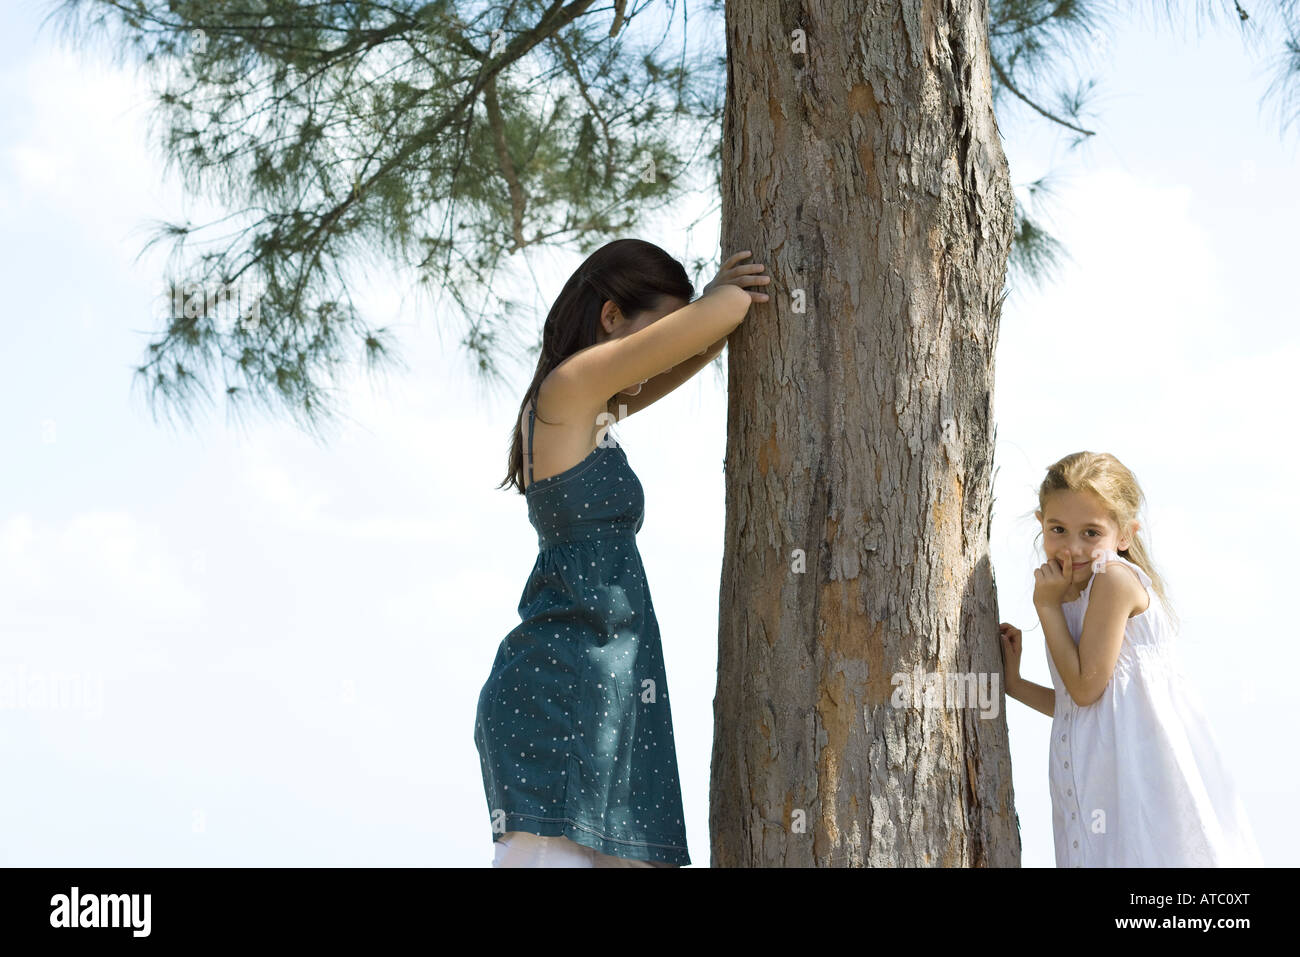 Two young friends playing hide-and-seek, one placing finger on lips and looking at camera - Stock Image